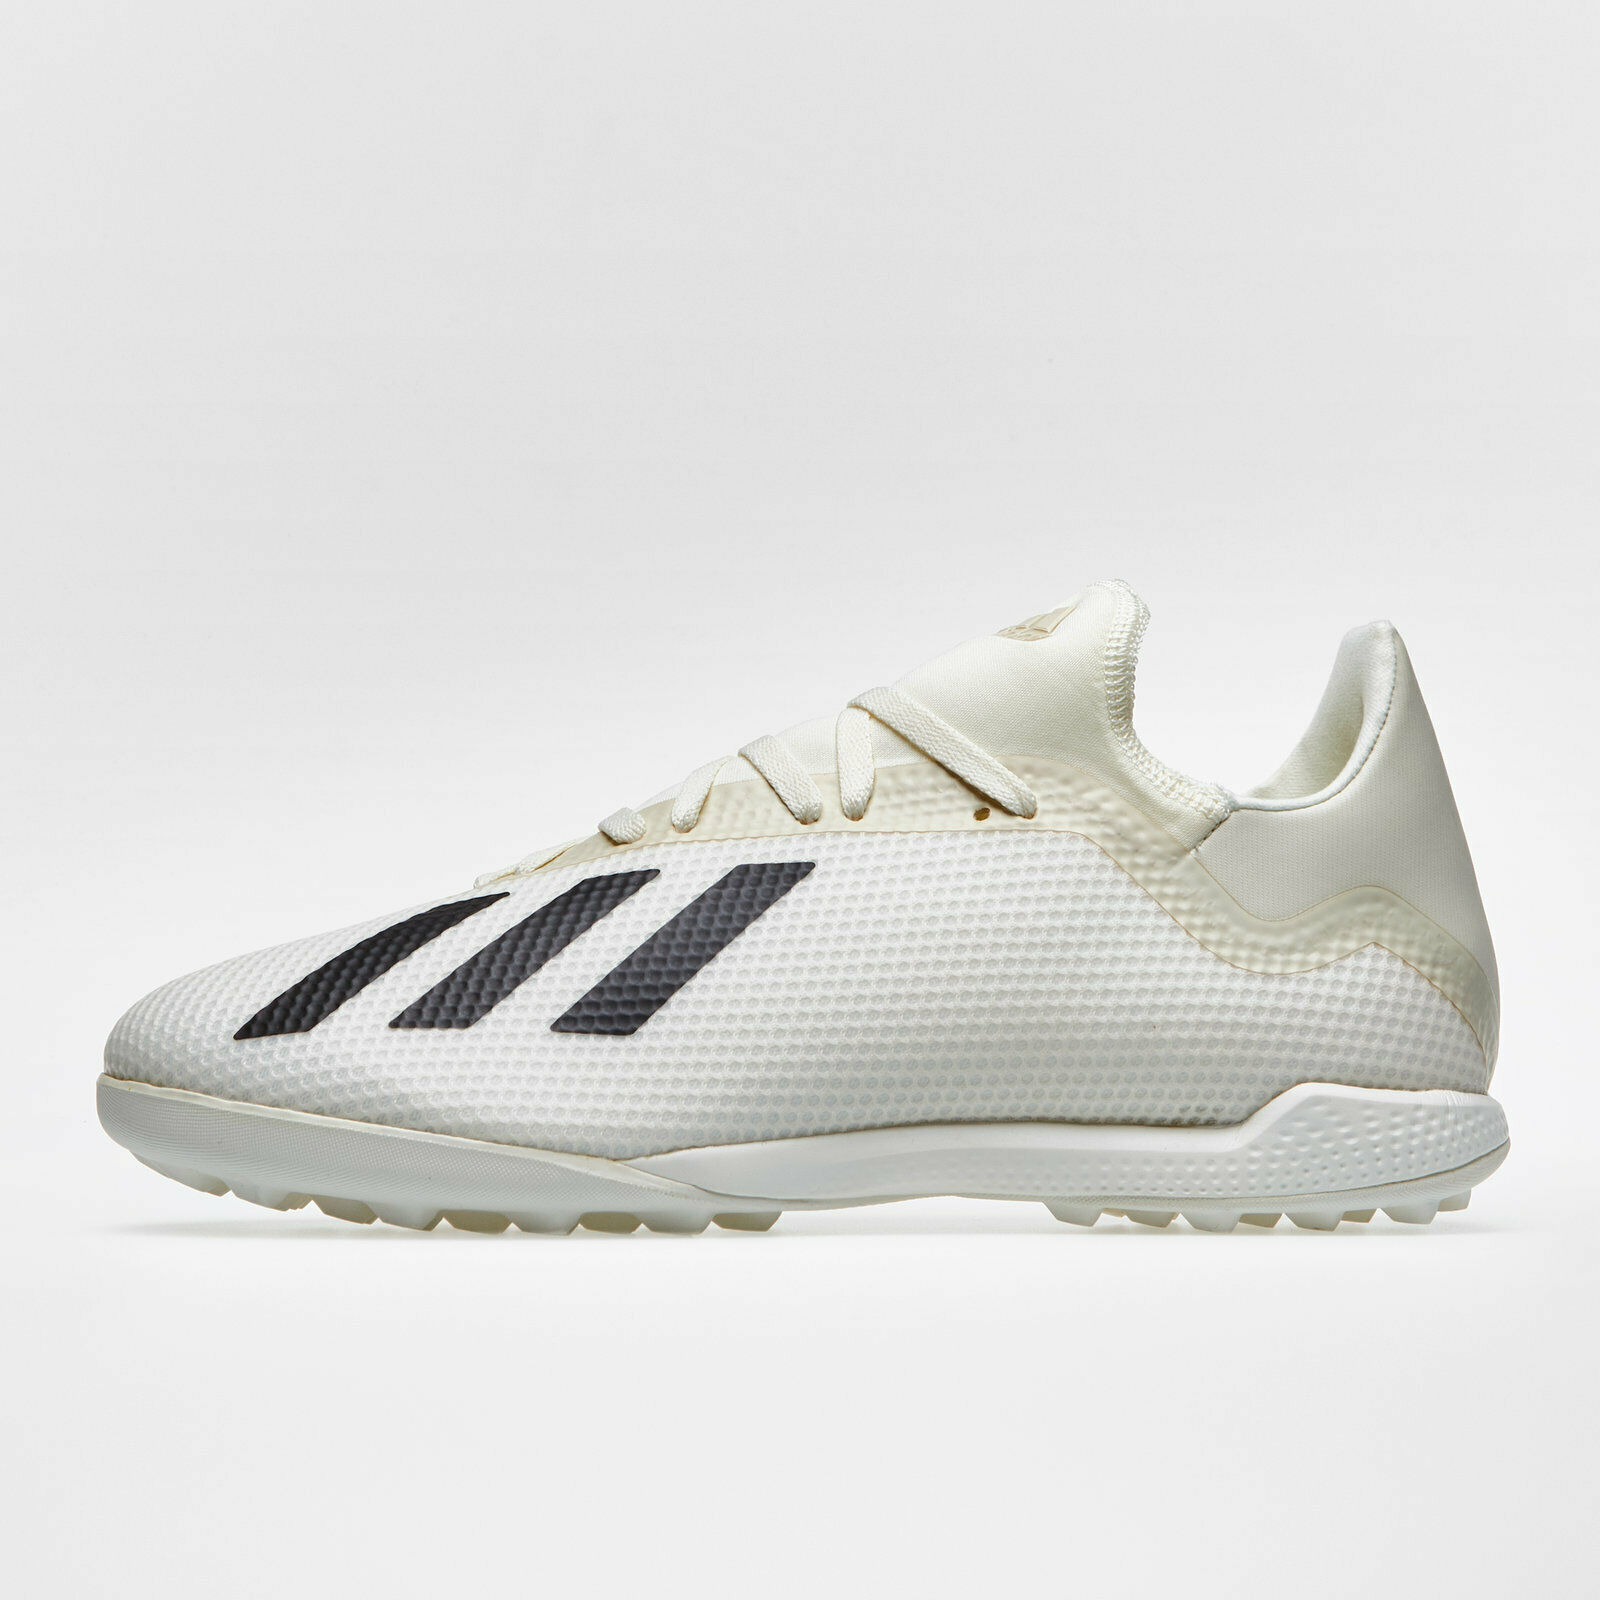 Adidas Mens X Tango 18.3 TF Football Boots Studs Trainers Sports shoes White